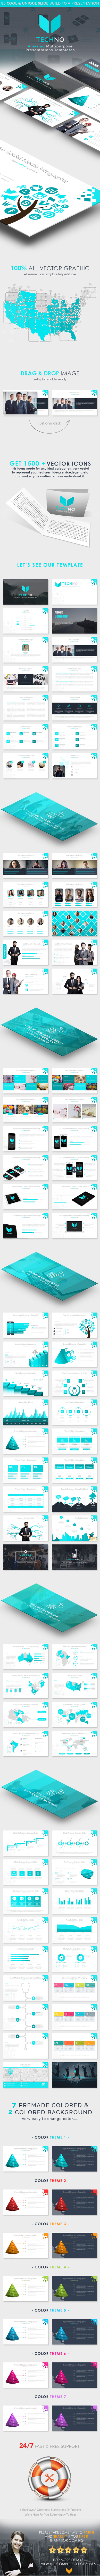 Techno - Multipurpose Presentation Template - Business PowerPoint Templates